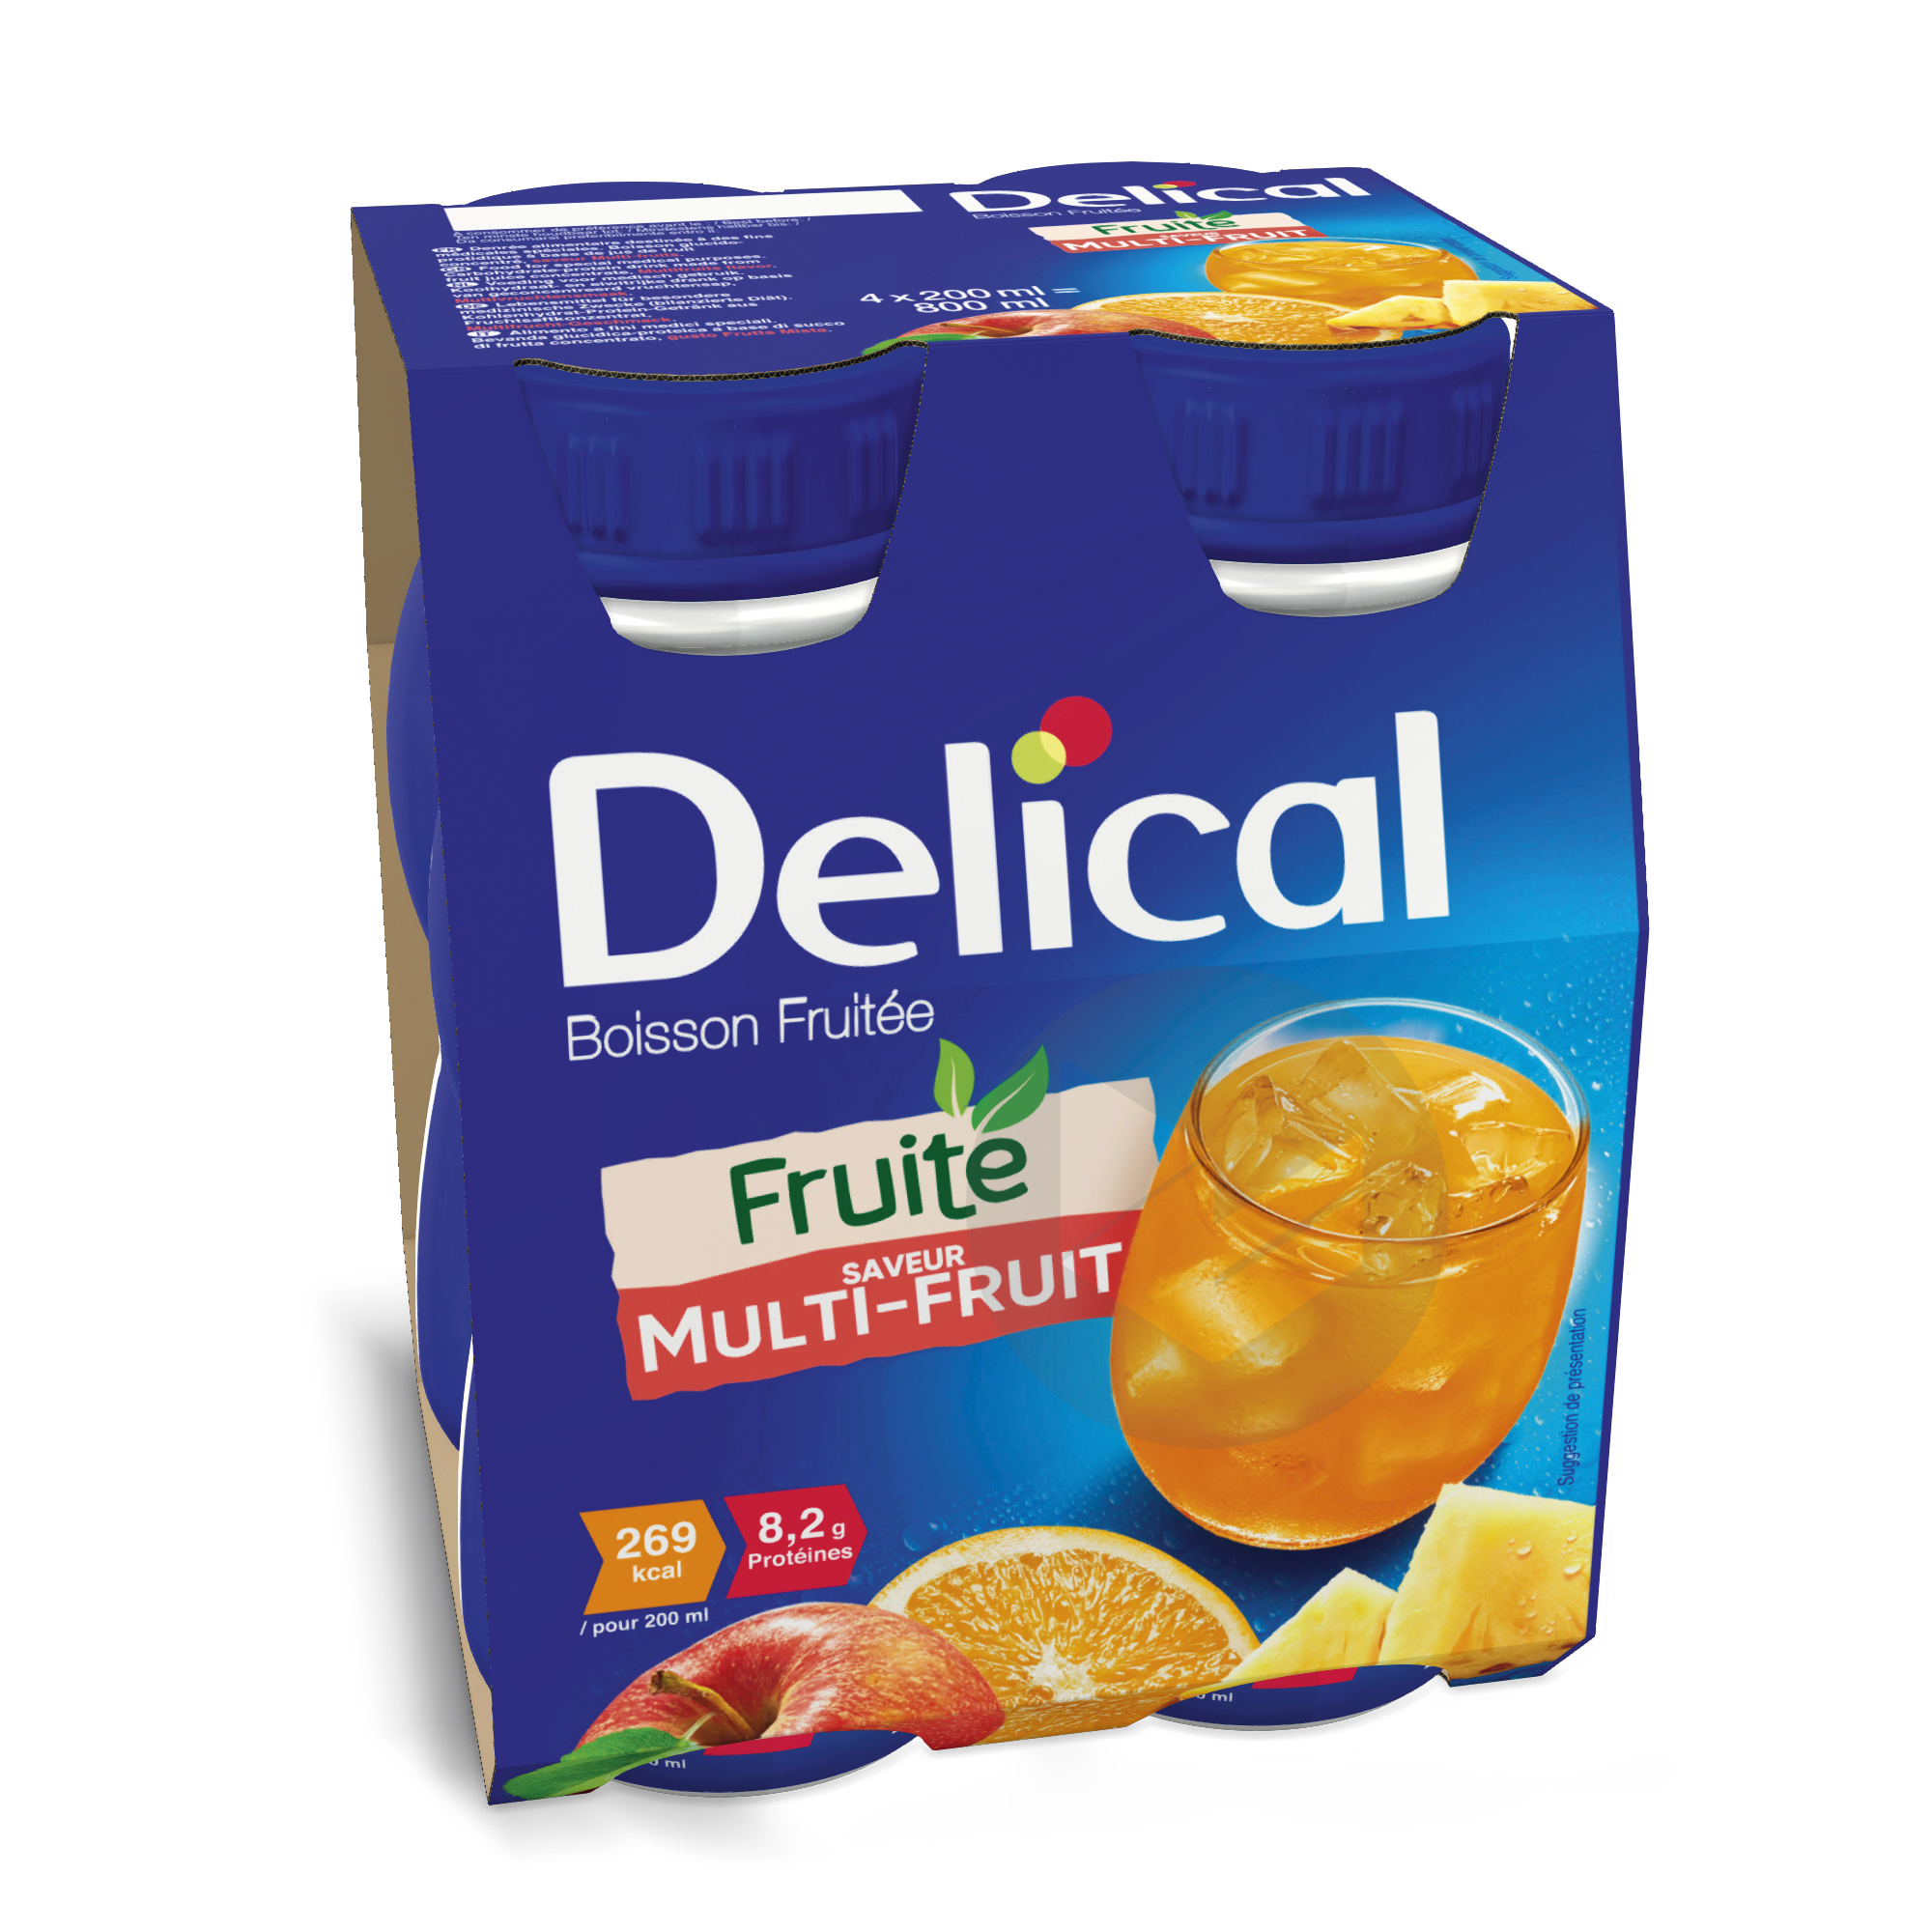 Delical Boisson Fruitee Multi Fruits